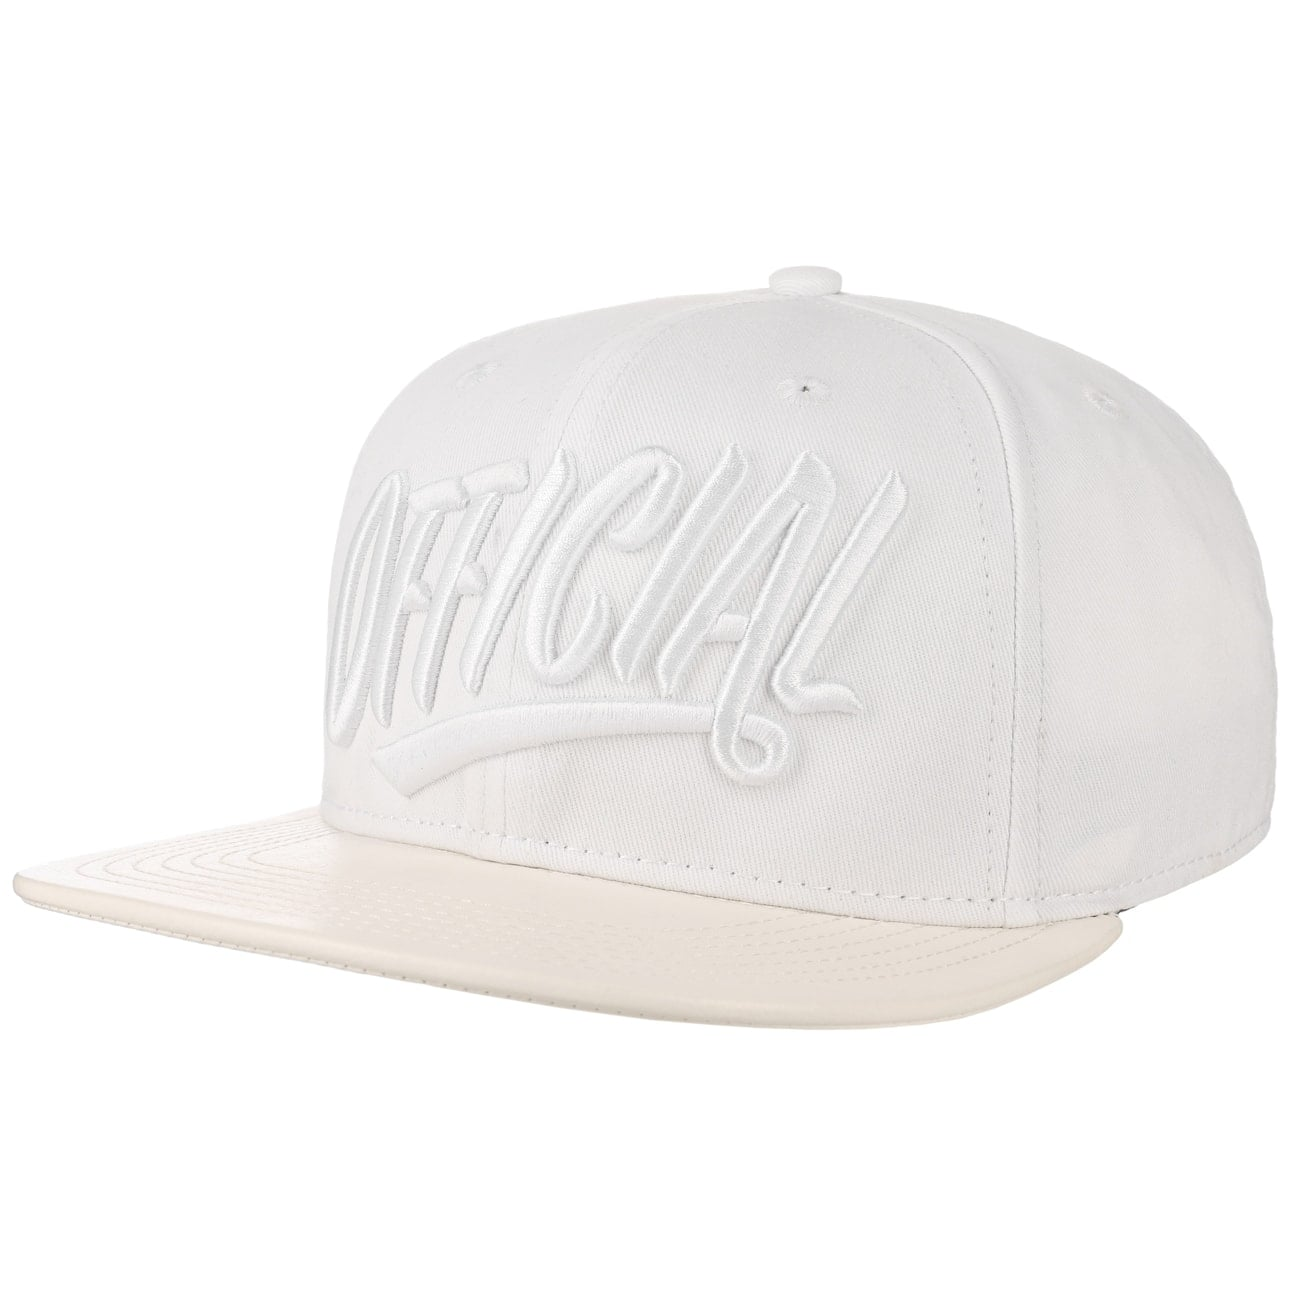 Gorra 1D 2.0 Snapback by Official Headwear